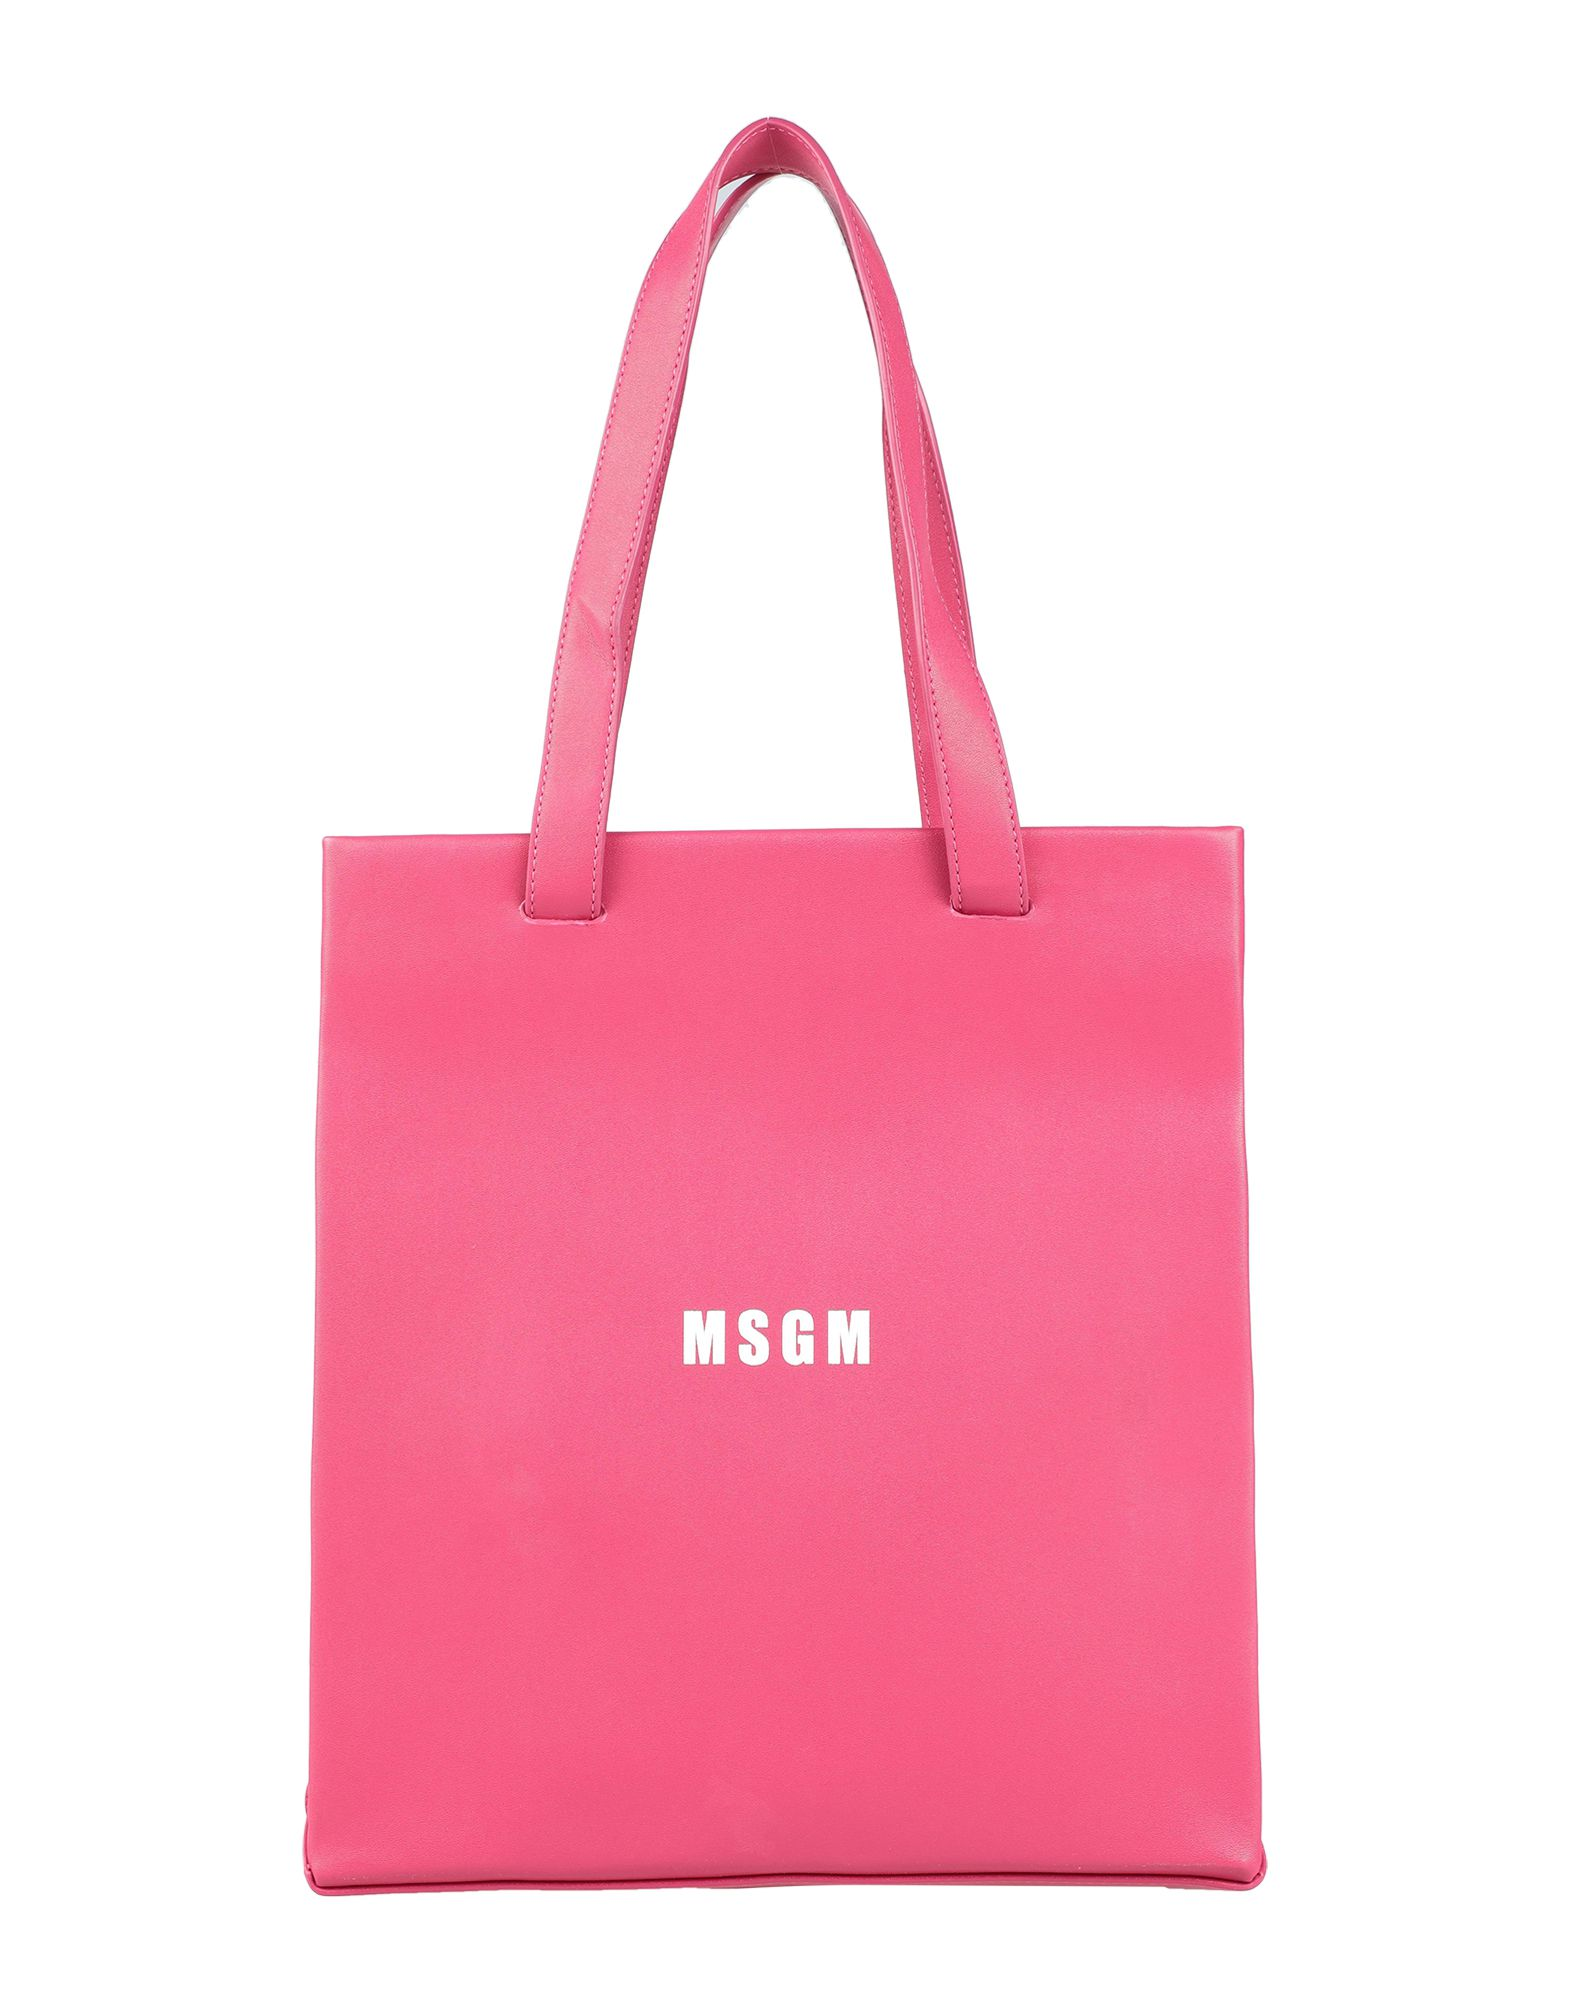 MSGM Handbags. faux leather, logo, solid color, magnetic fastening, double handle, medium. 100% Polyurethane